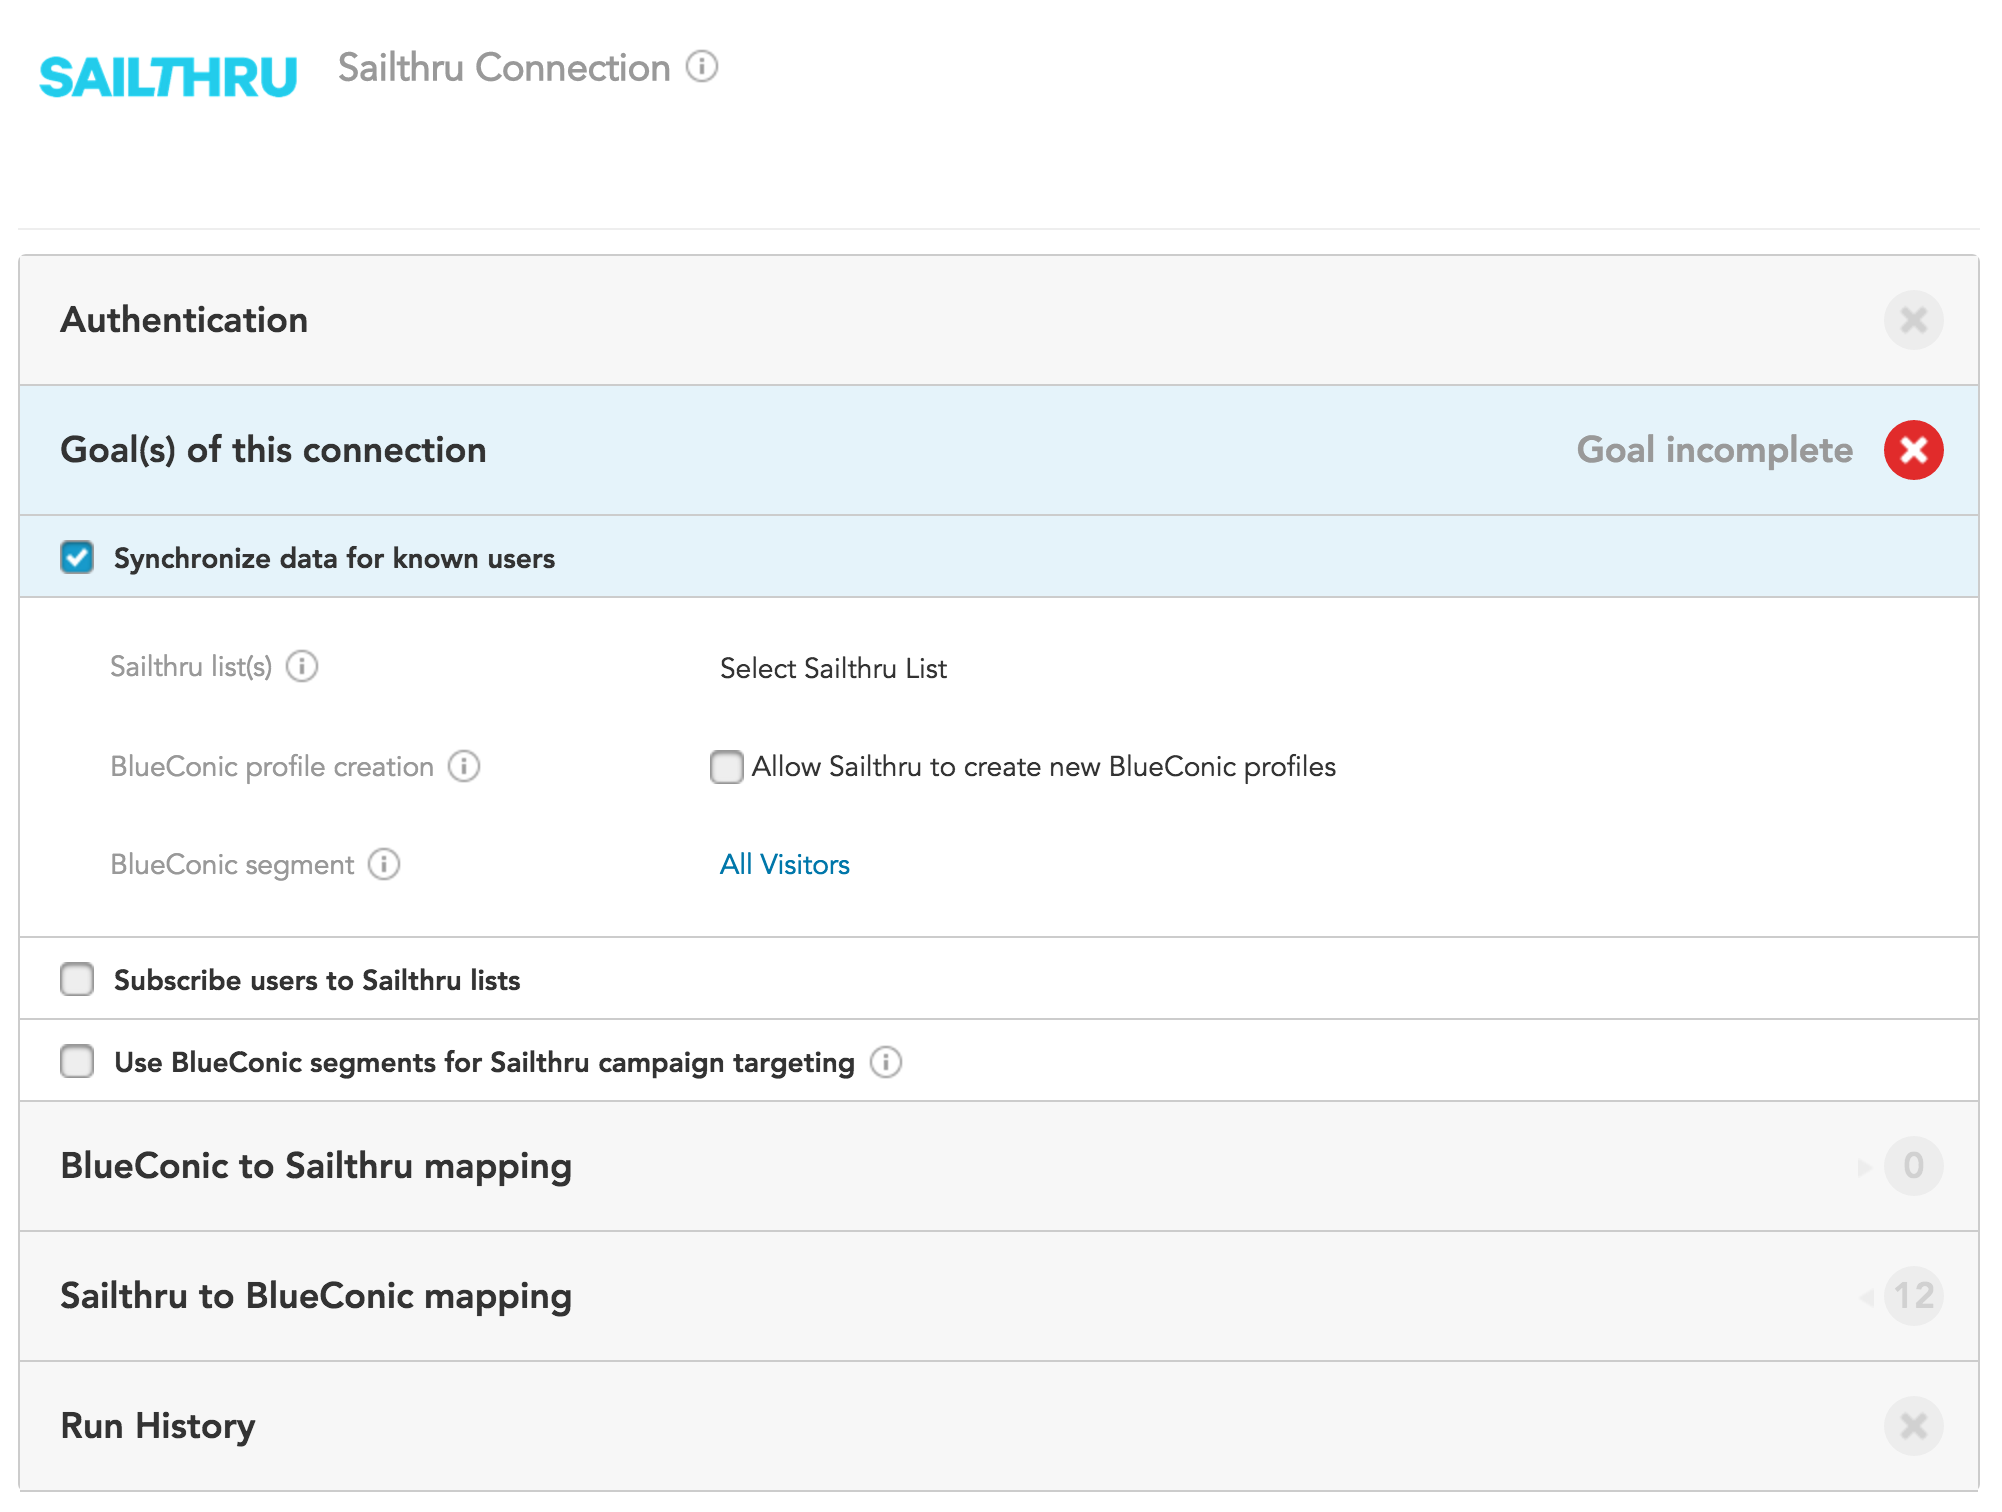 How do I use Mailchimp Connection, Sailthru Connection, and Salesforce Connection with the BlueConic CDP?